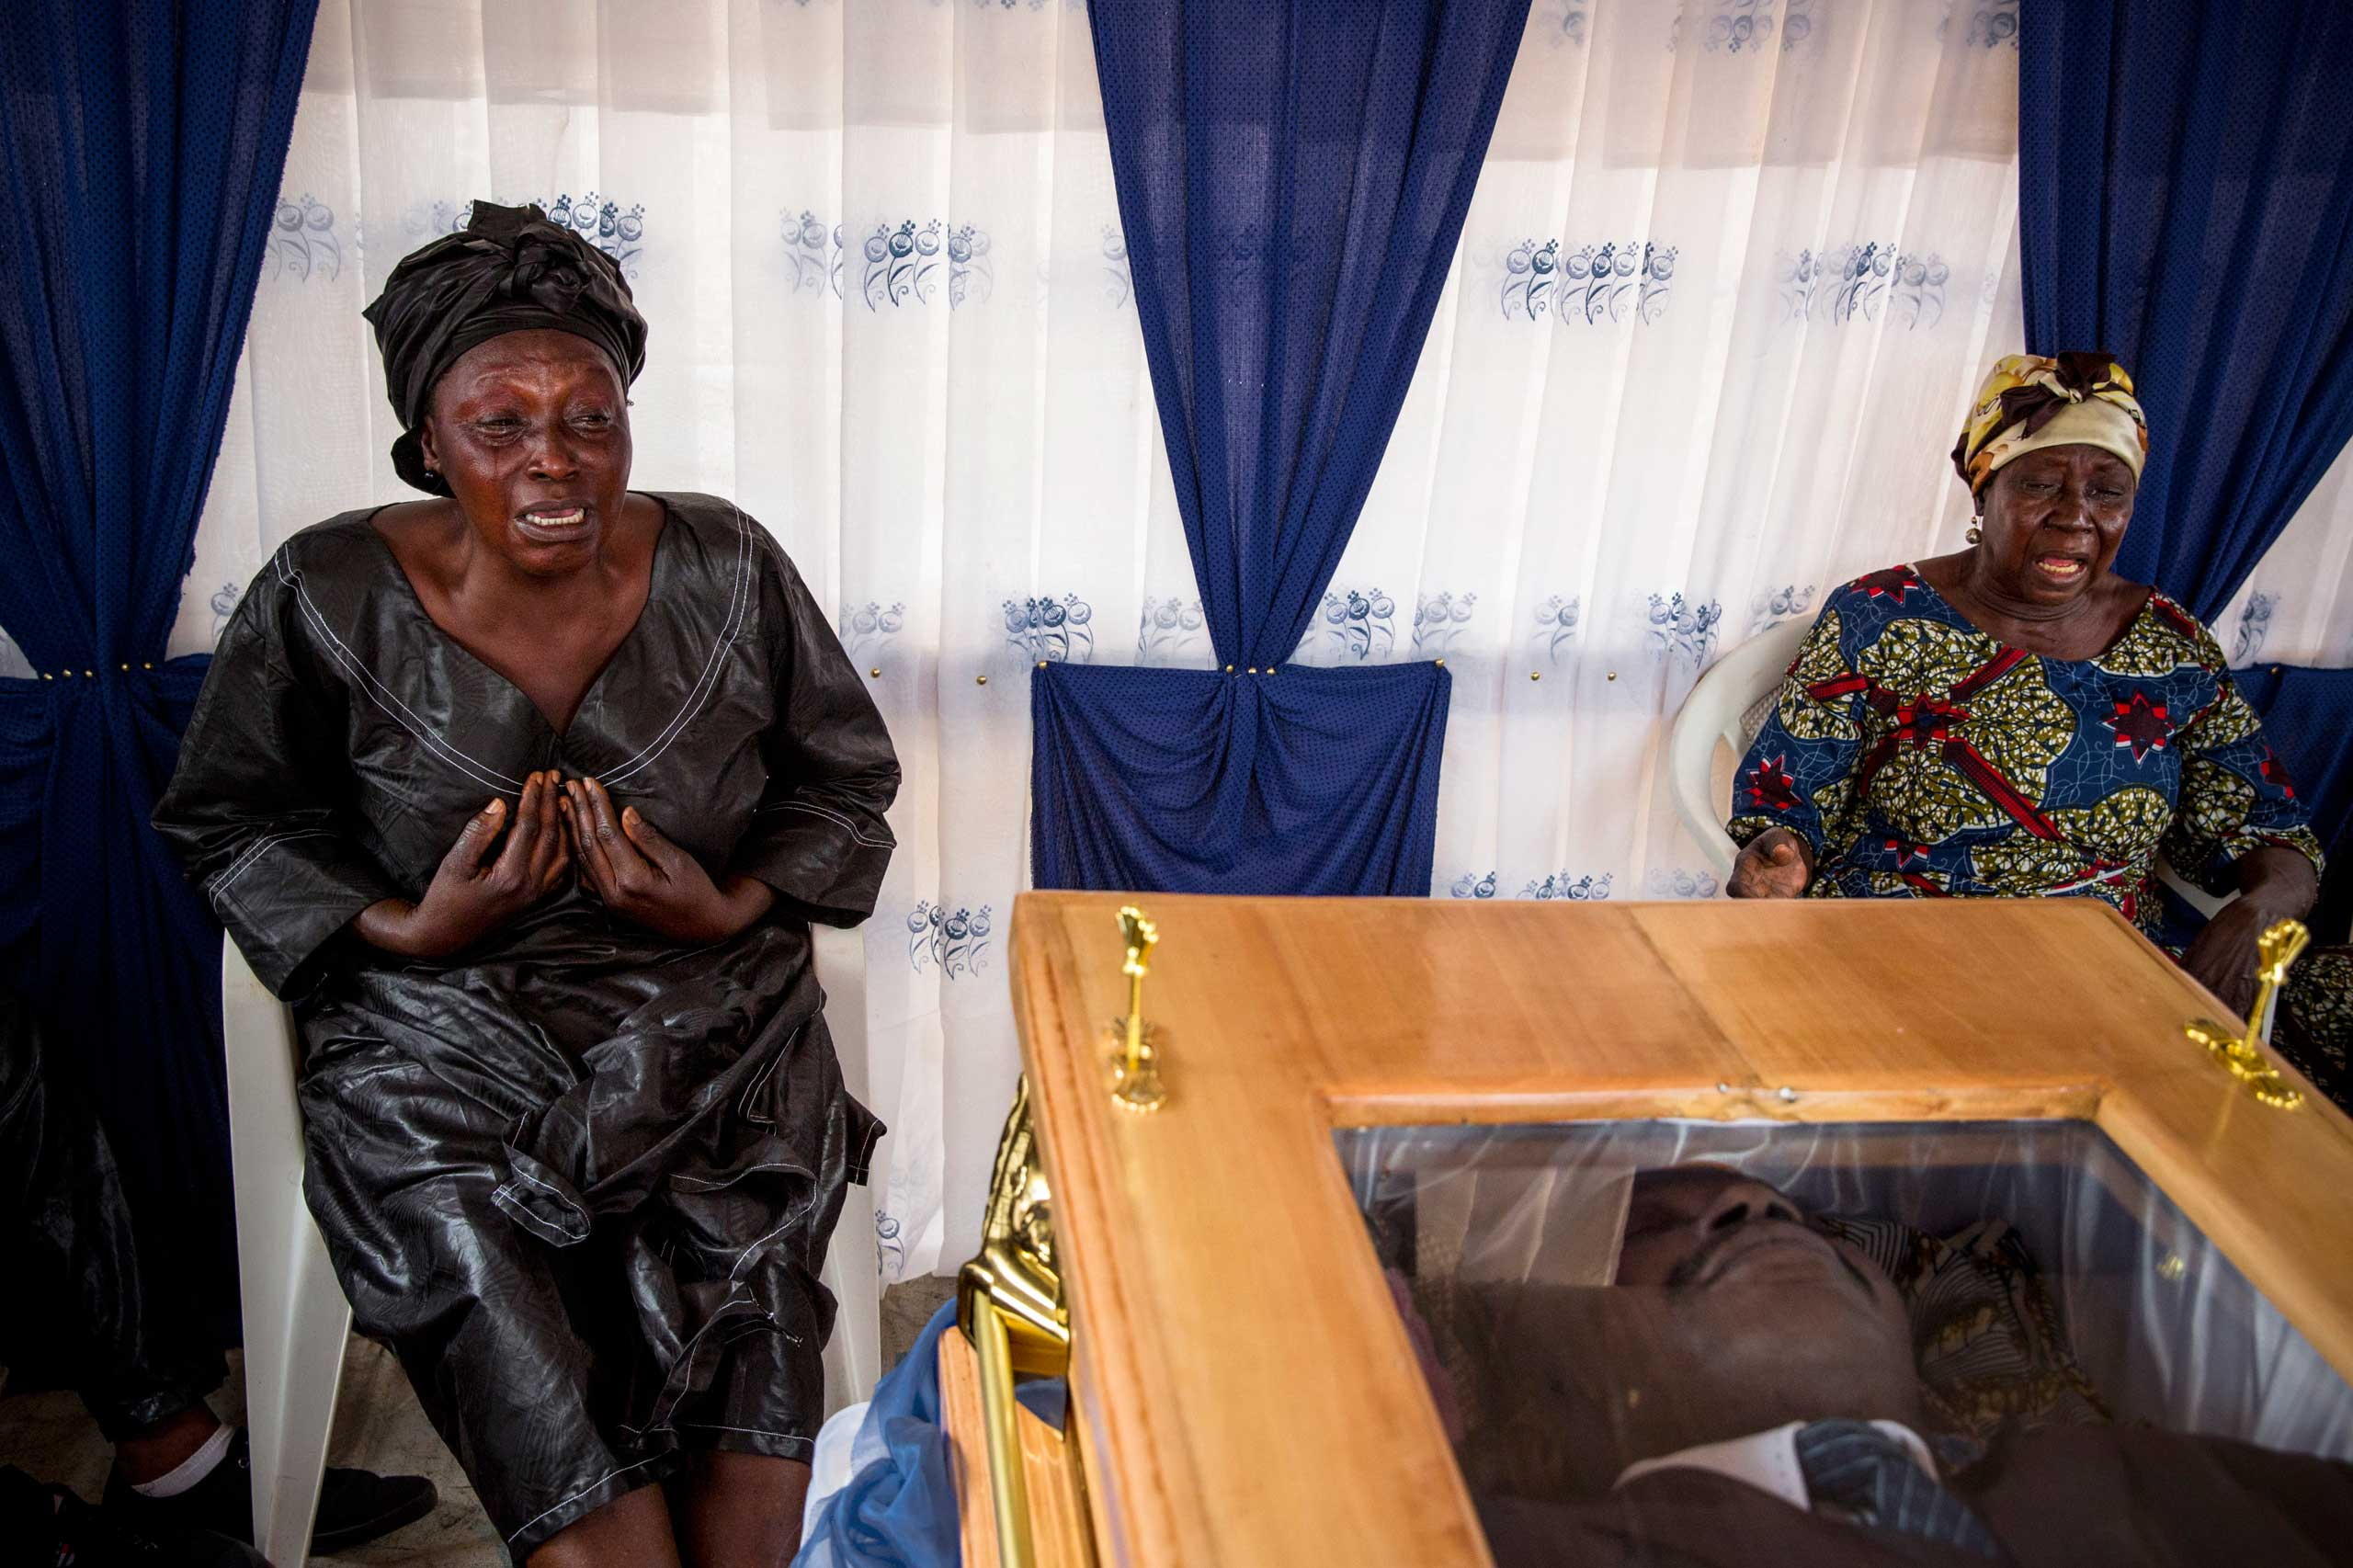 Relatives attending a funeral touch the coffin of a judge who was said to be killed by Séléka fighters. Bangui, Central African Republic. Nov. 29, 2013.